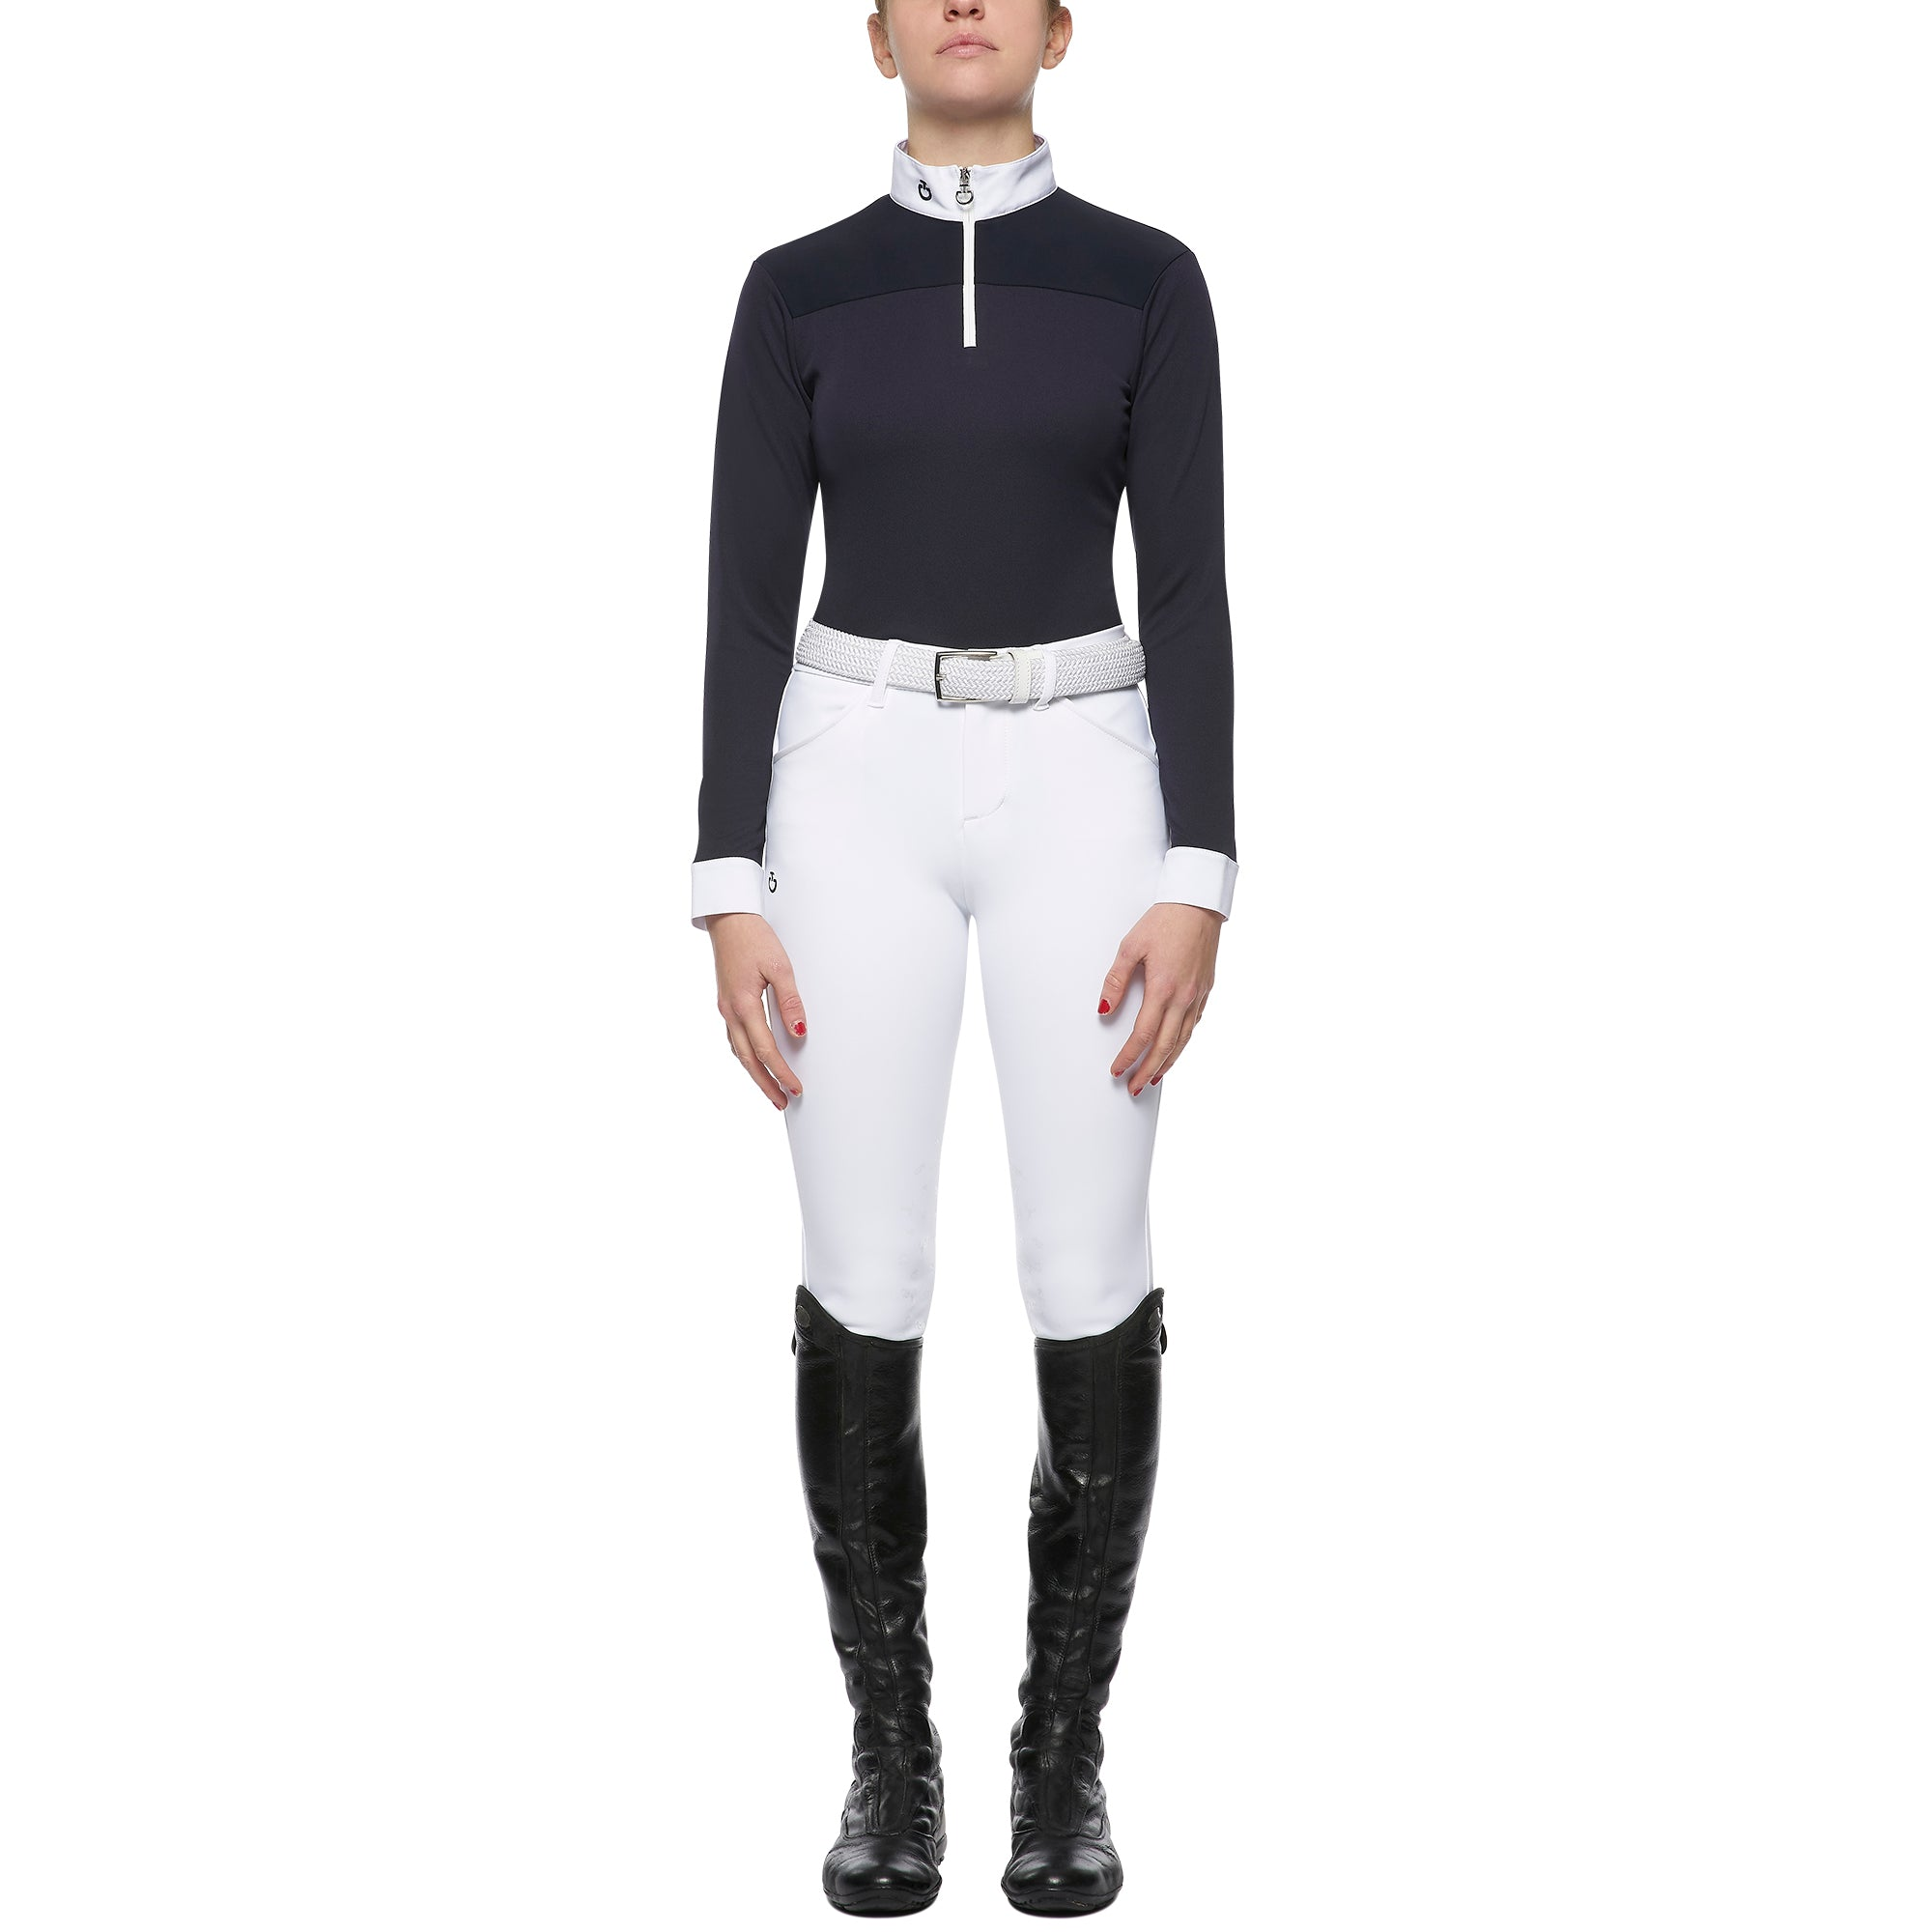 Cavalleria Toscana Kid's Piquet Stretch CT Horse L/S Zip Competition Shirt